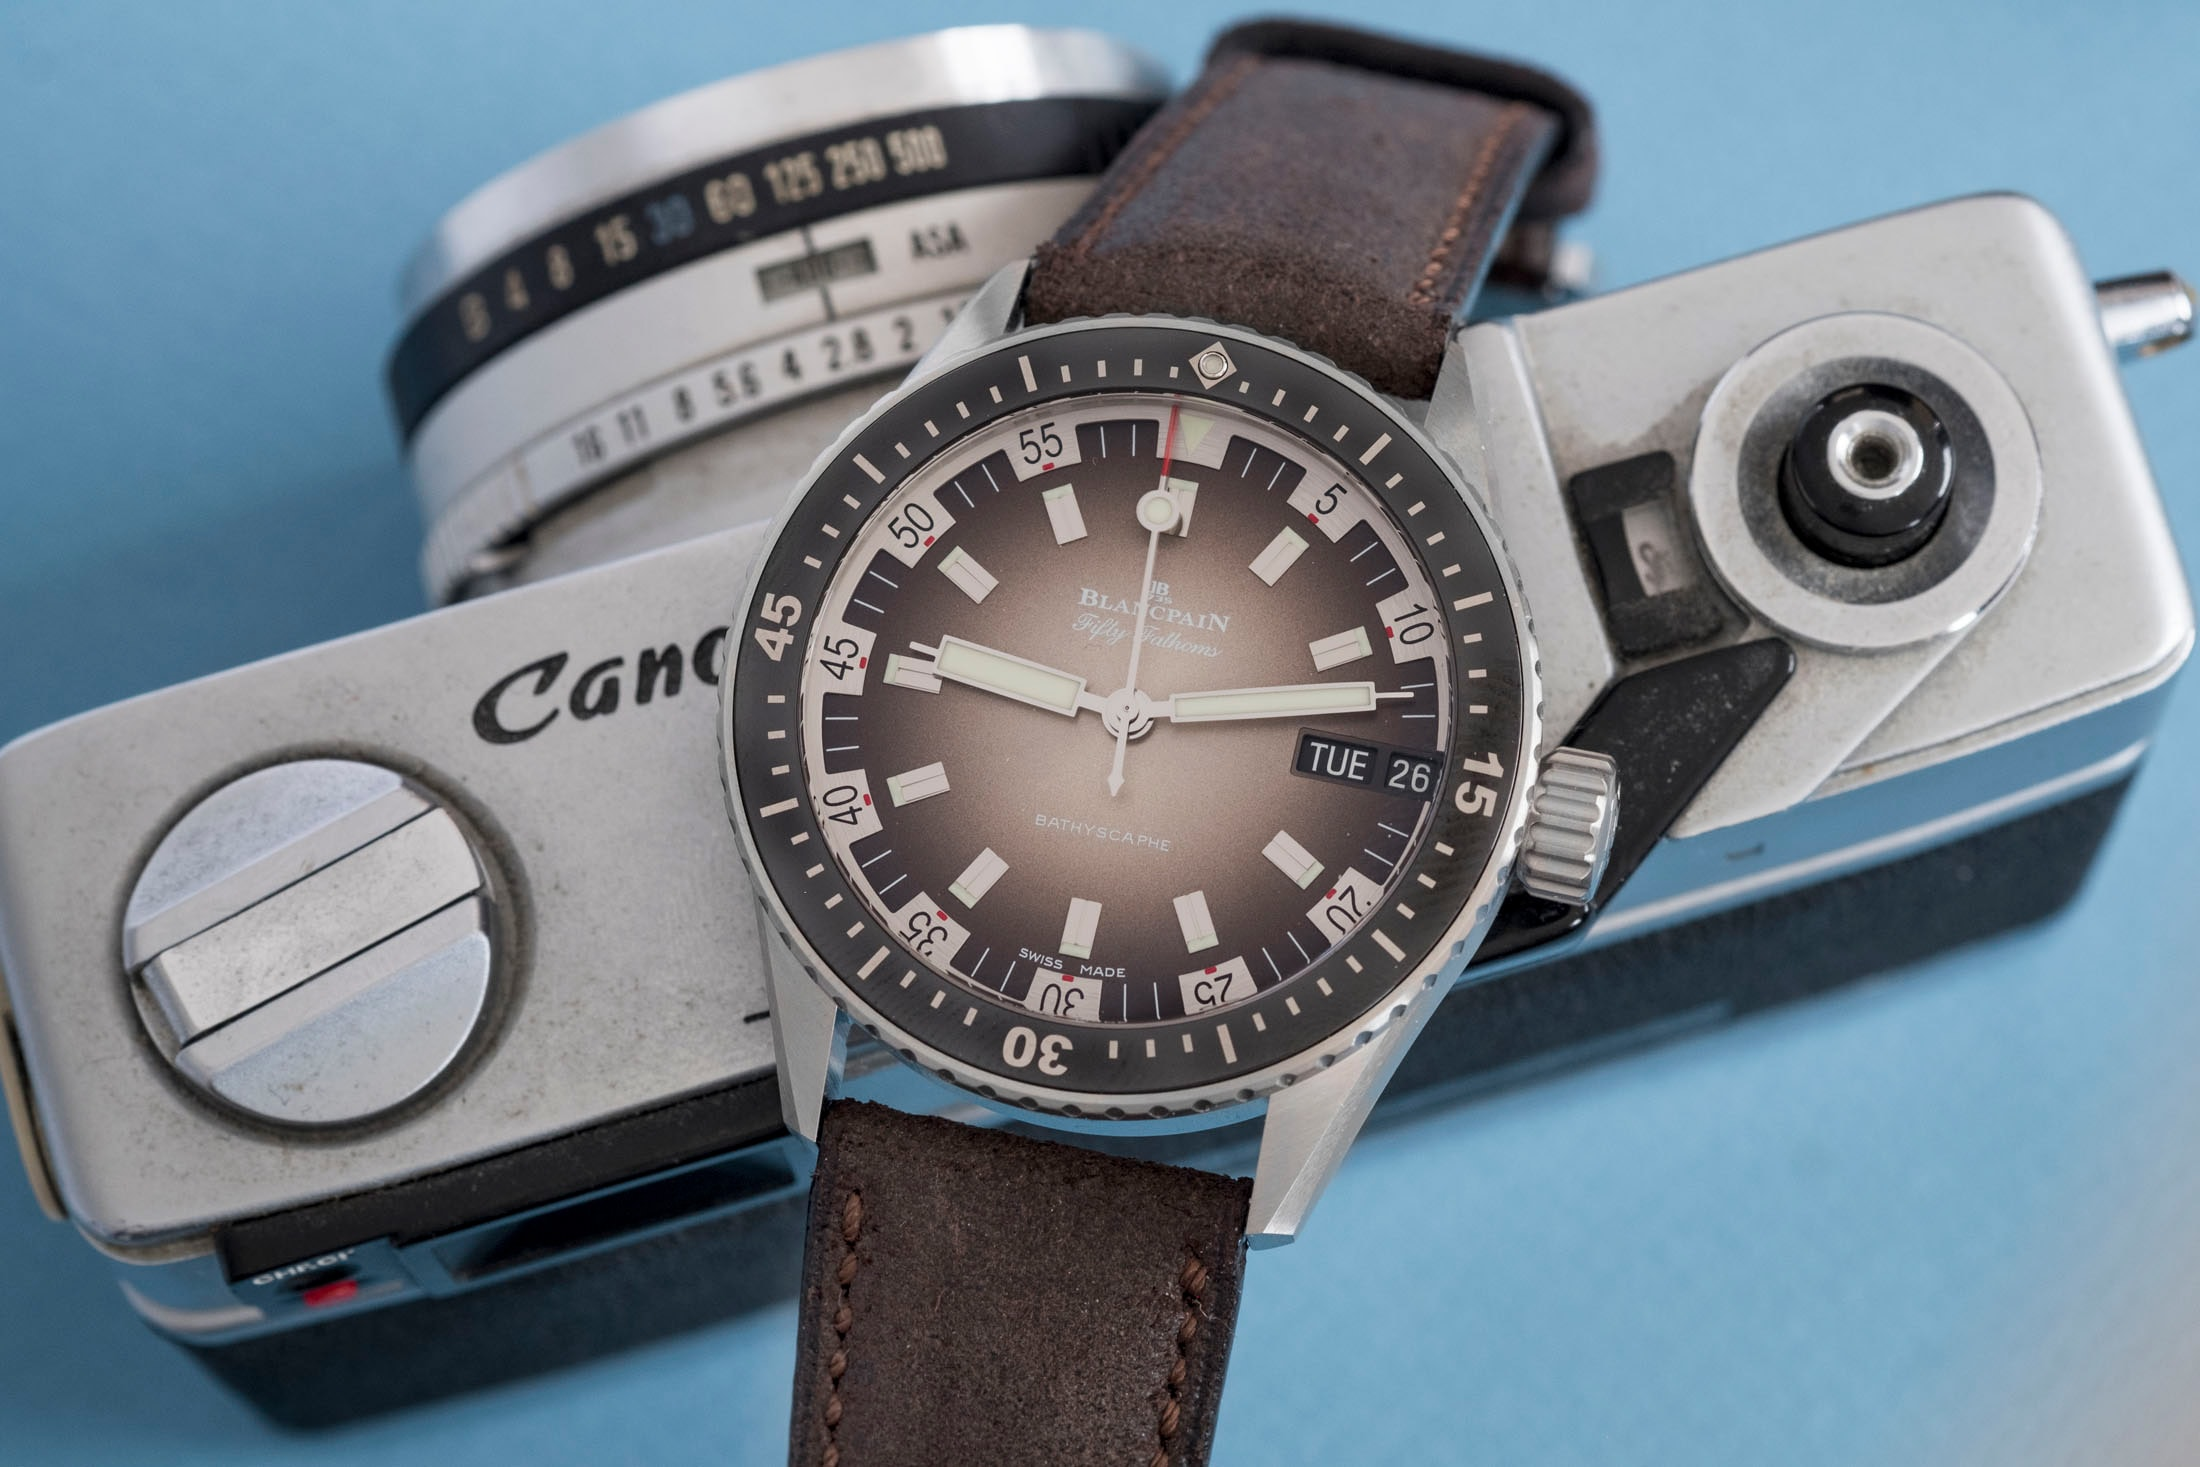 Review: The Blancpain Fifty Fathoms Bathyscaphe Day Date 70s DSCF8685